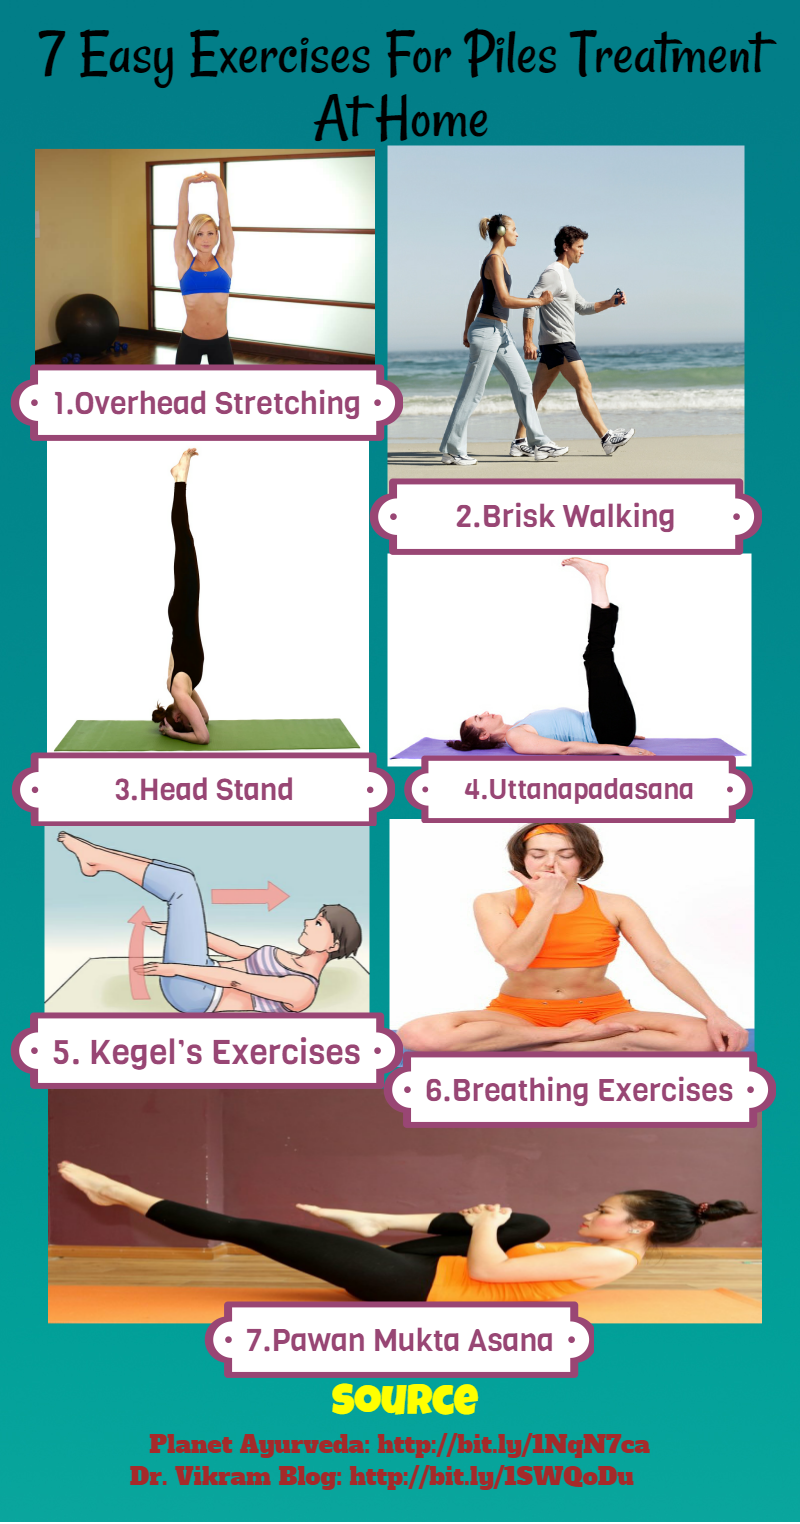 7Easy Exercises and Stretches for Strong, Healthy Knees (Suitable IfYou Are Short onTime) pics